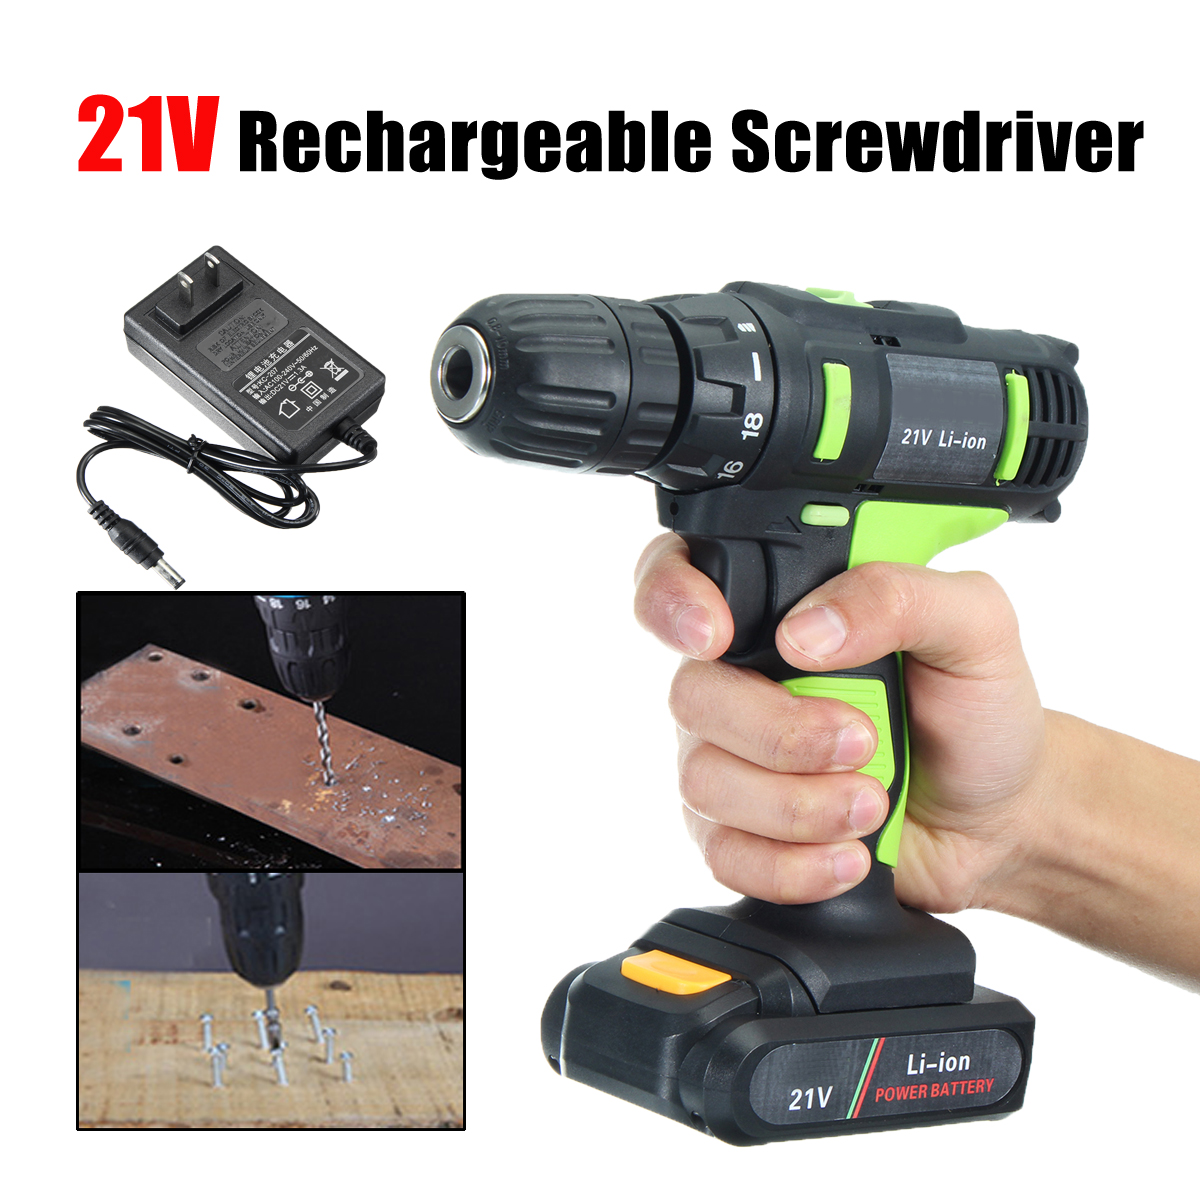 21V Li-ion Electric Screwdriver Rechargeable Electric Charging Power Drill Two Speed 30-45Nm Hand Tools 21v battery screwdriver electric mini cordless two speed charged drill power tools impact li ion screwdriver drille